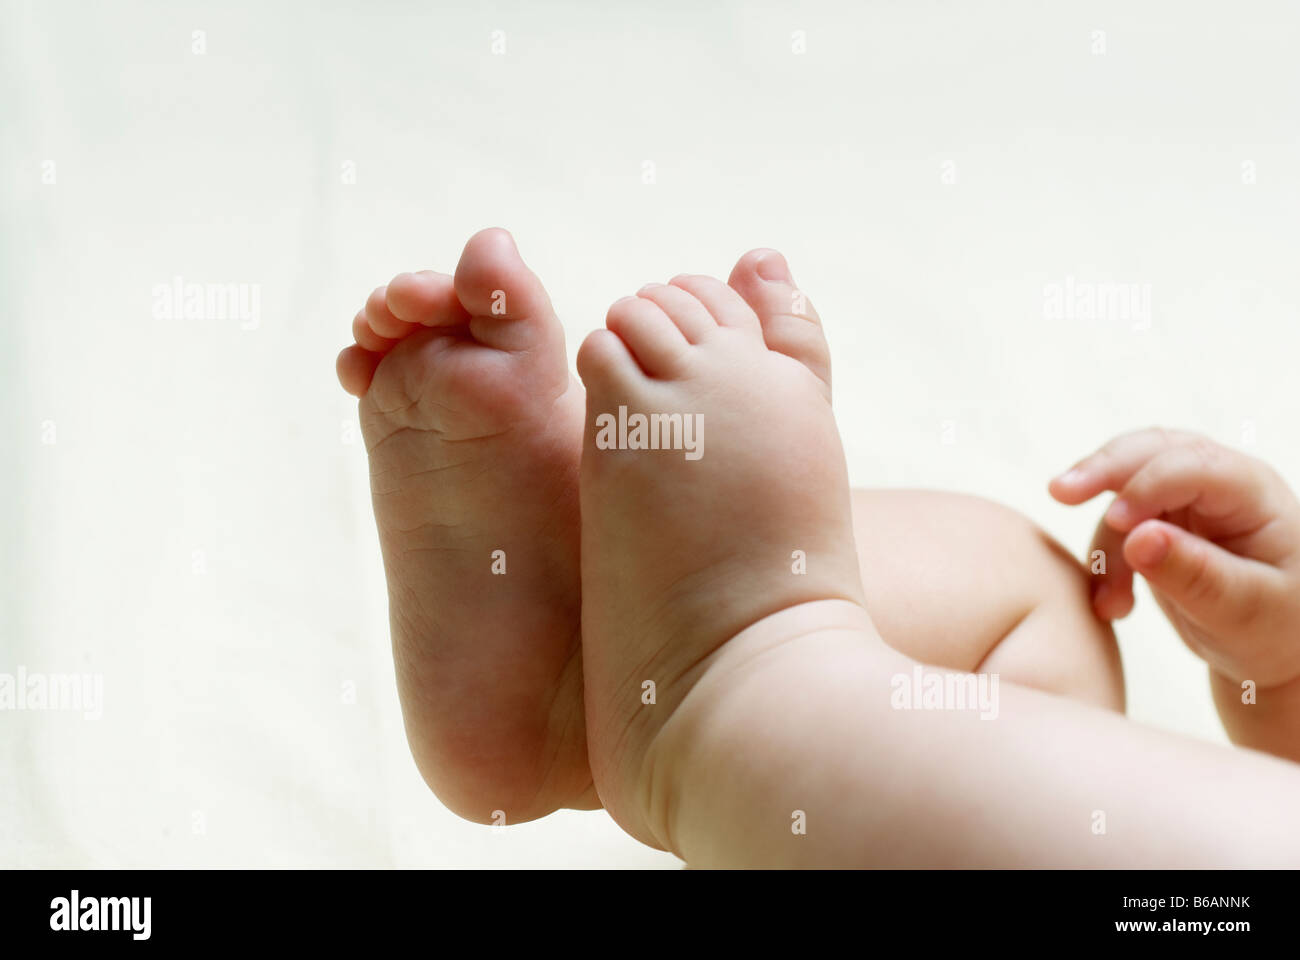 Close-up of baby's feet - Stock Image